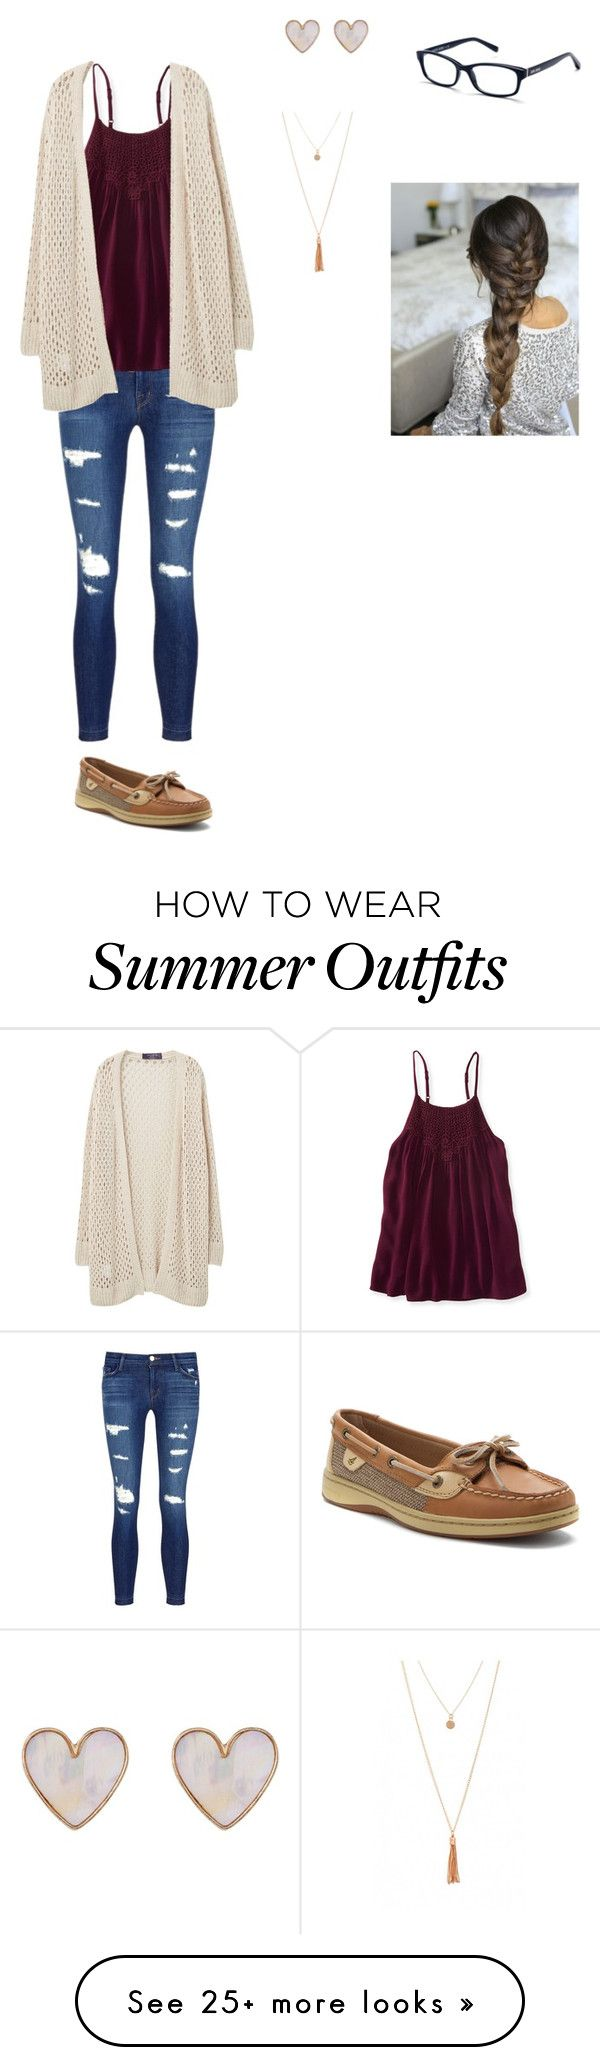 """""""School Outfit #10"""" by aprylbrown on Polyvore featuring J Brand, Aéropostale, Violeta by Mango, Sperry, New Look and Bobbi Brown Cosmetics"""